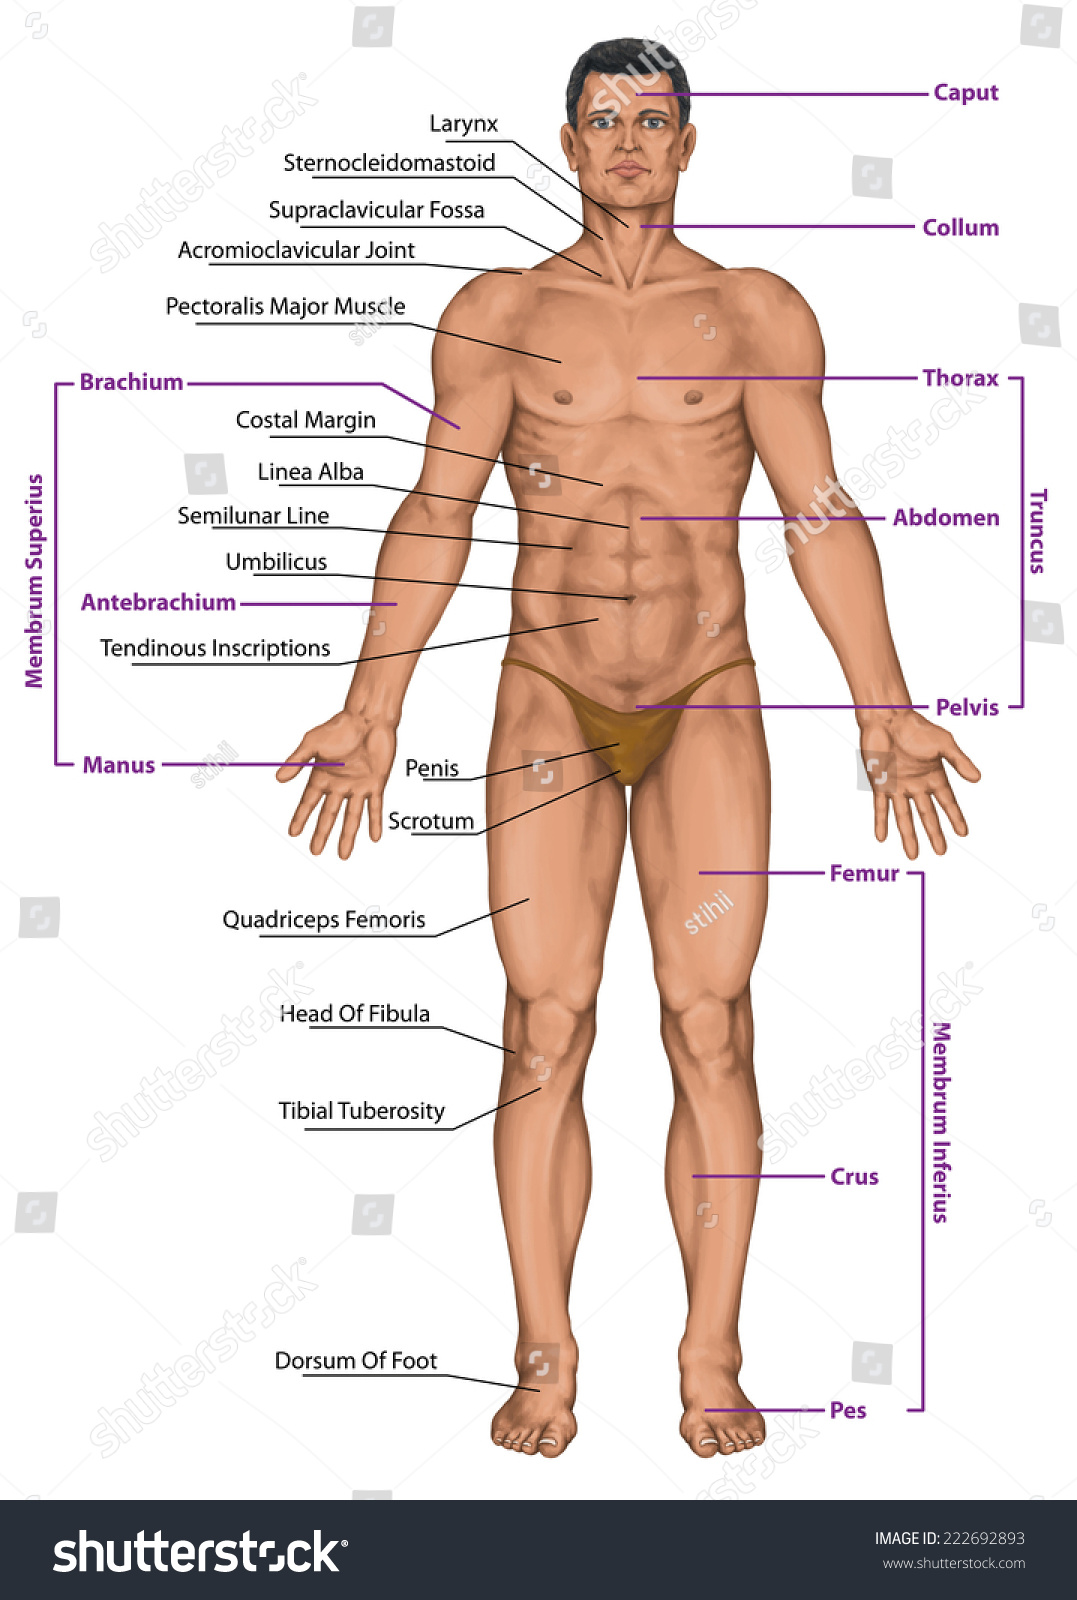 Human body surface anatomy